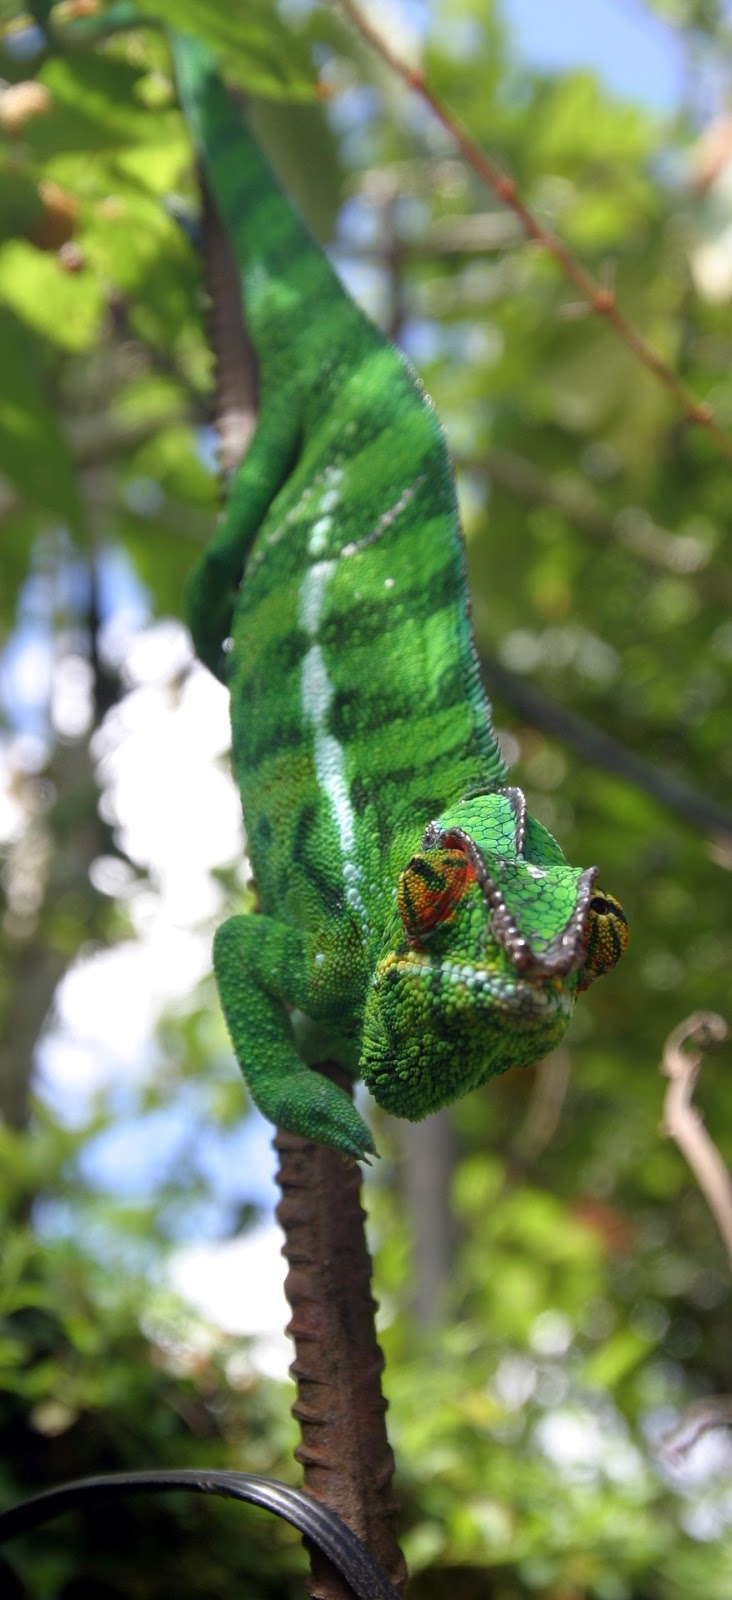 A chameleon on the move.